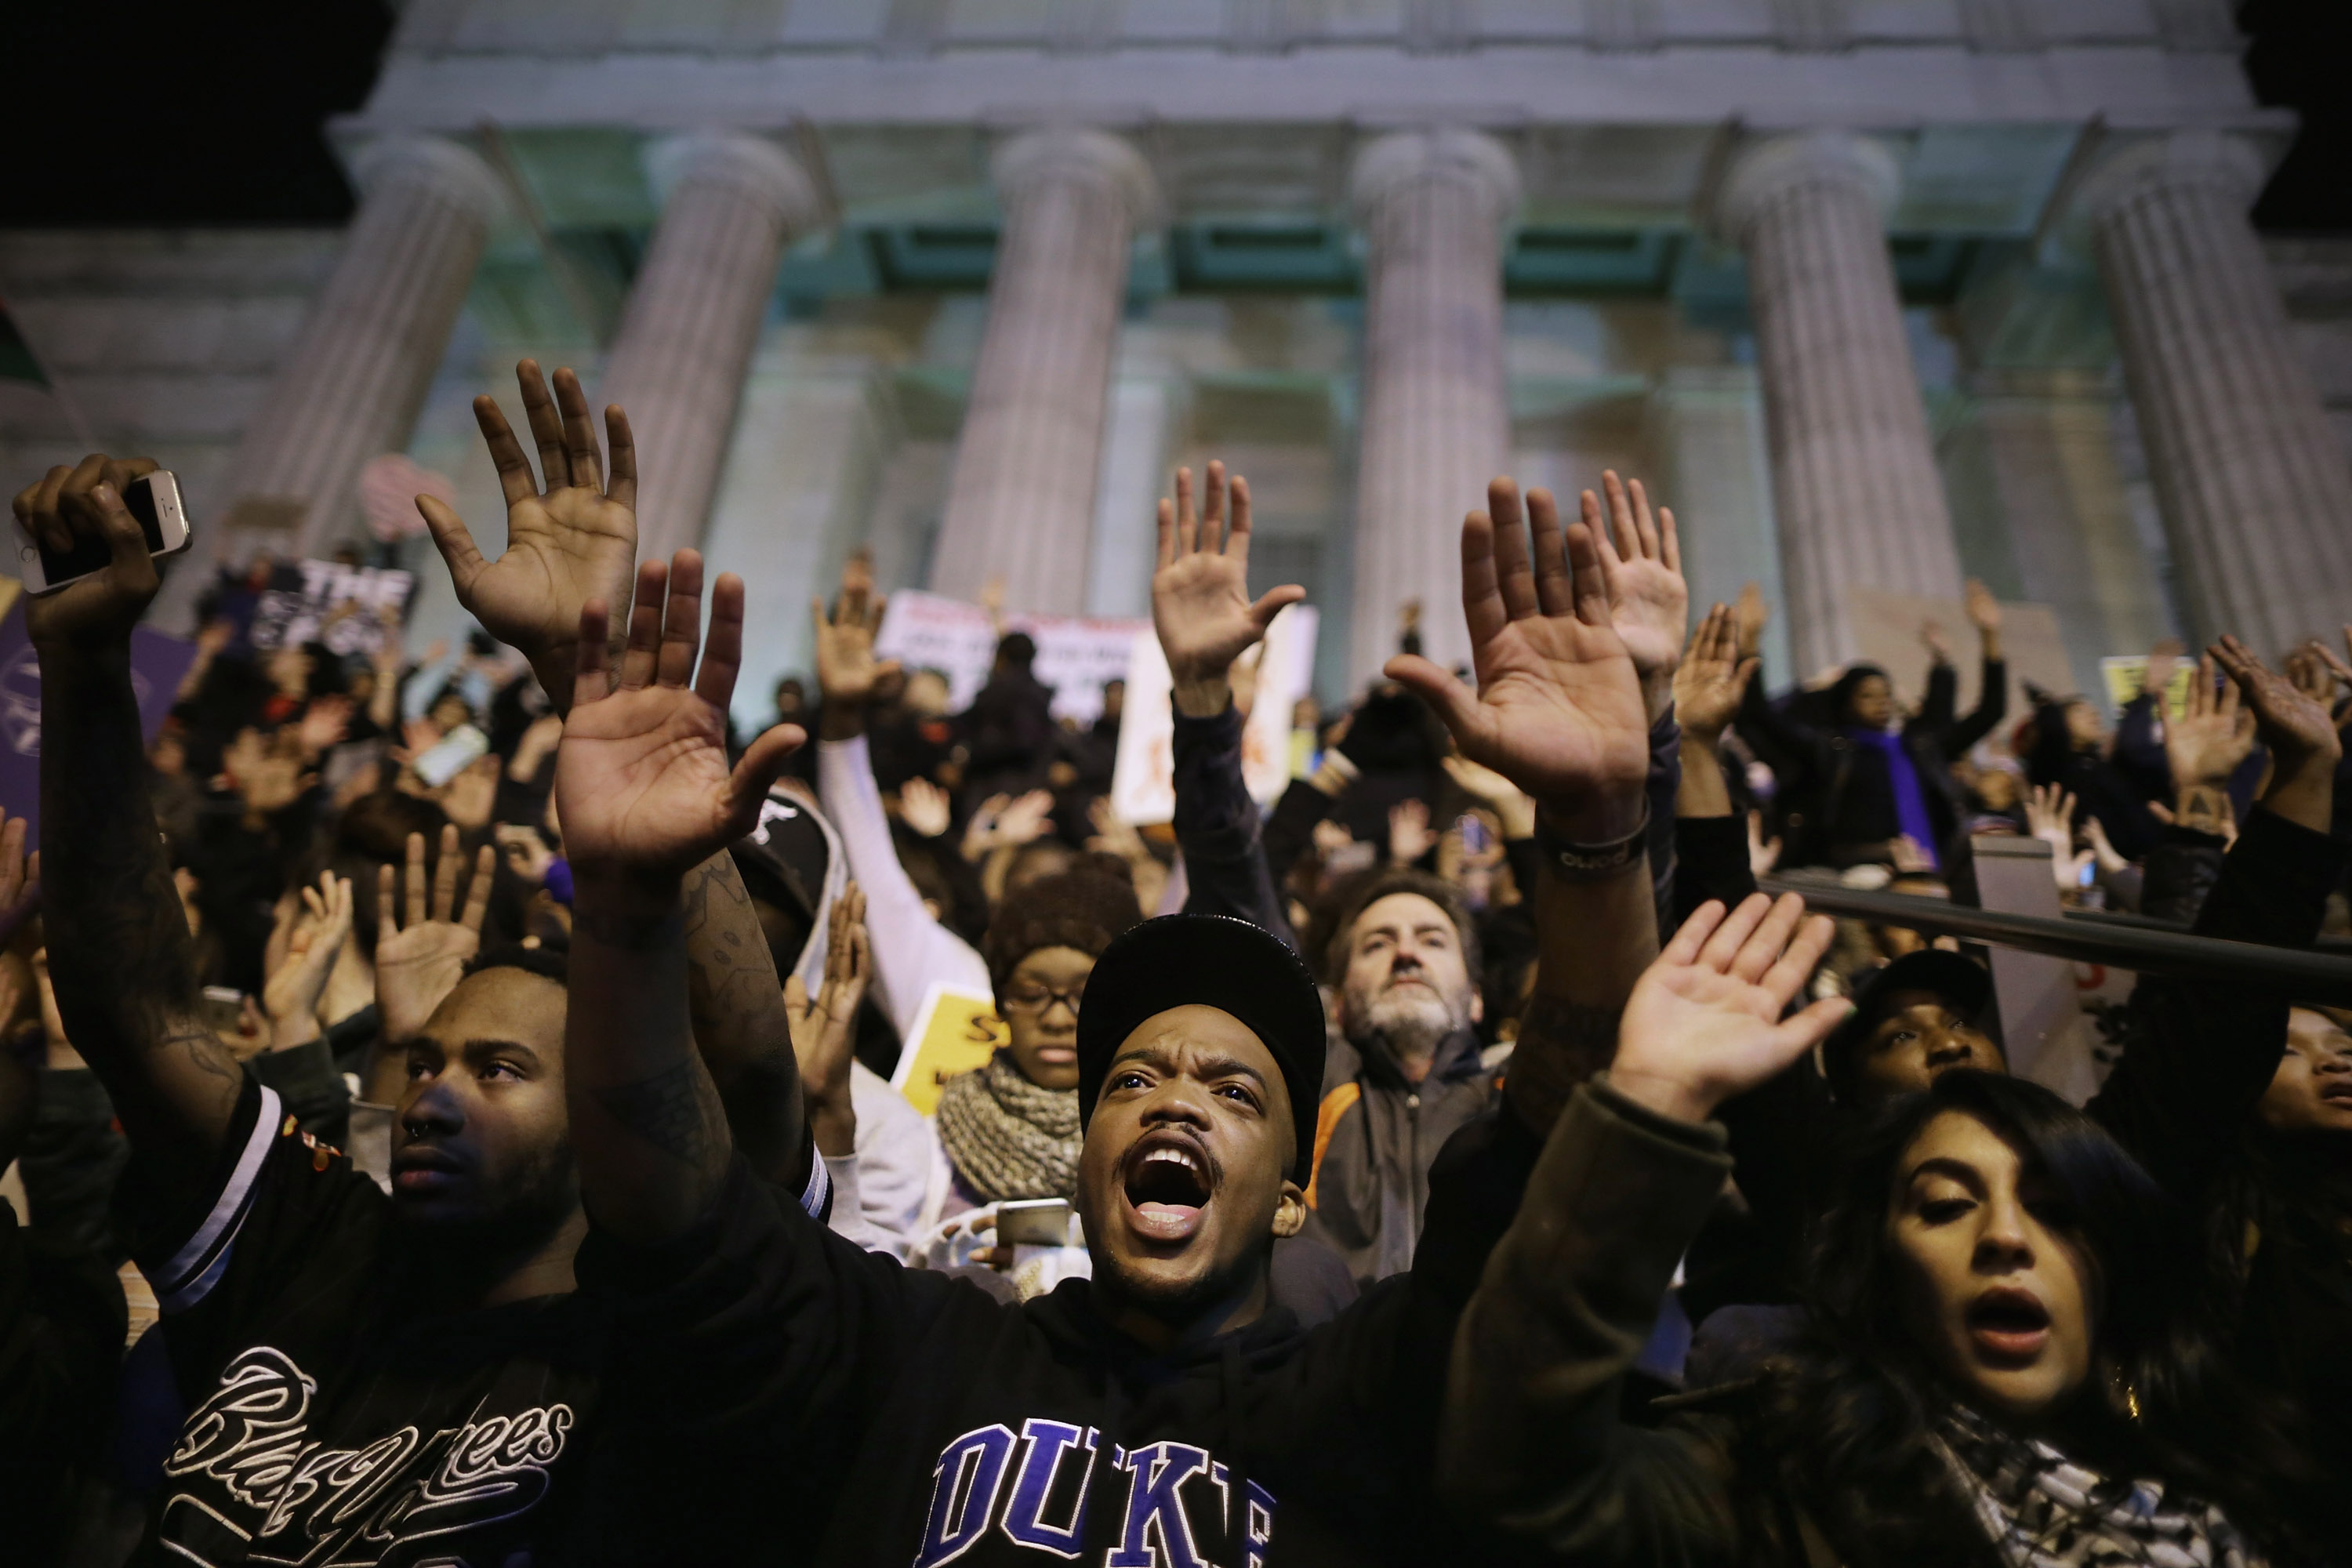 More than one thousand demonstrators chant  Hands up, don't shoot!  on the steps of the National Portrait Gallery in protest a day after the Ferguson grand jury decision to not indict officer Darren Wilson in the Michael Brown case November 25, 2014 in Washington, DC.